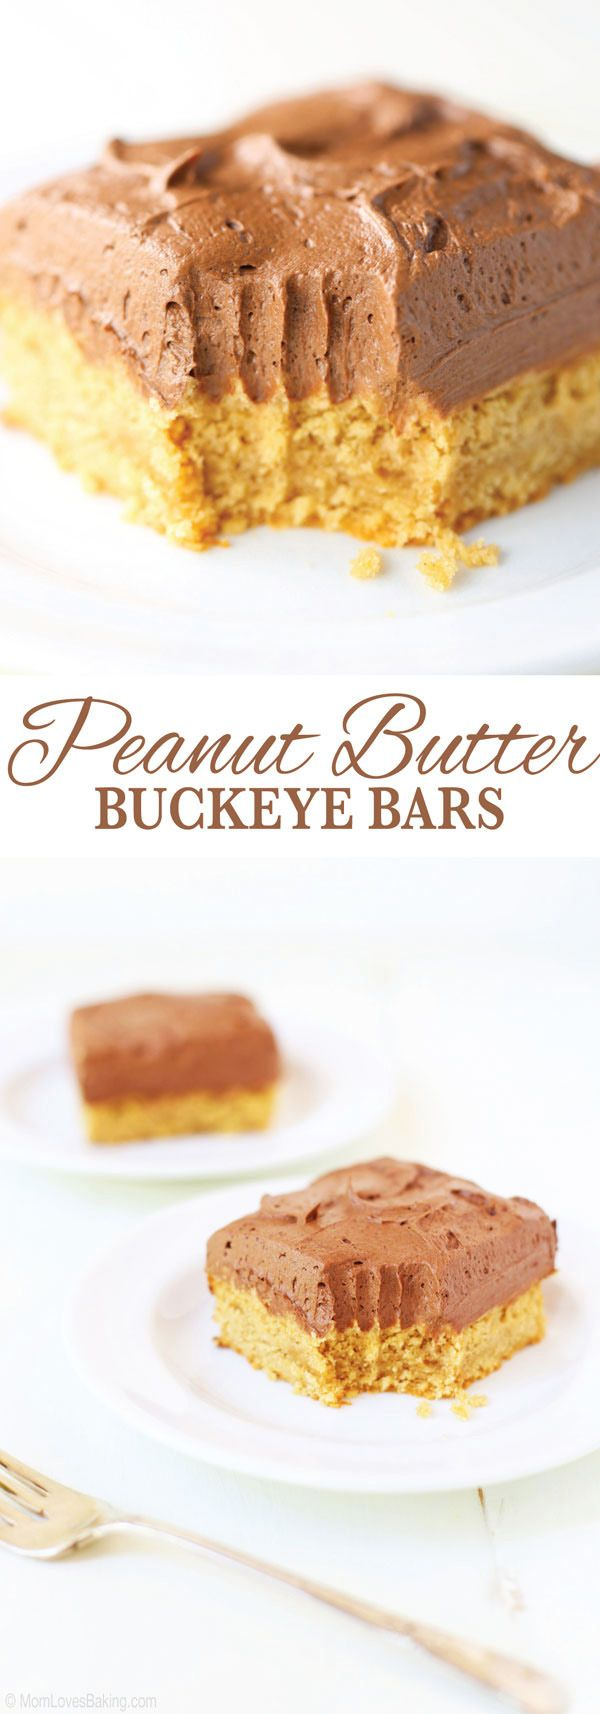 These Peanut Butter Buckeye Bars are like biting into a buckeye candy spread over a peanut butter cookie bar. So good! Find the recipe on http://MomLovesBaking.com